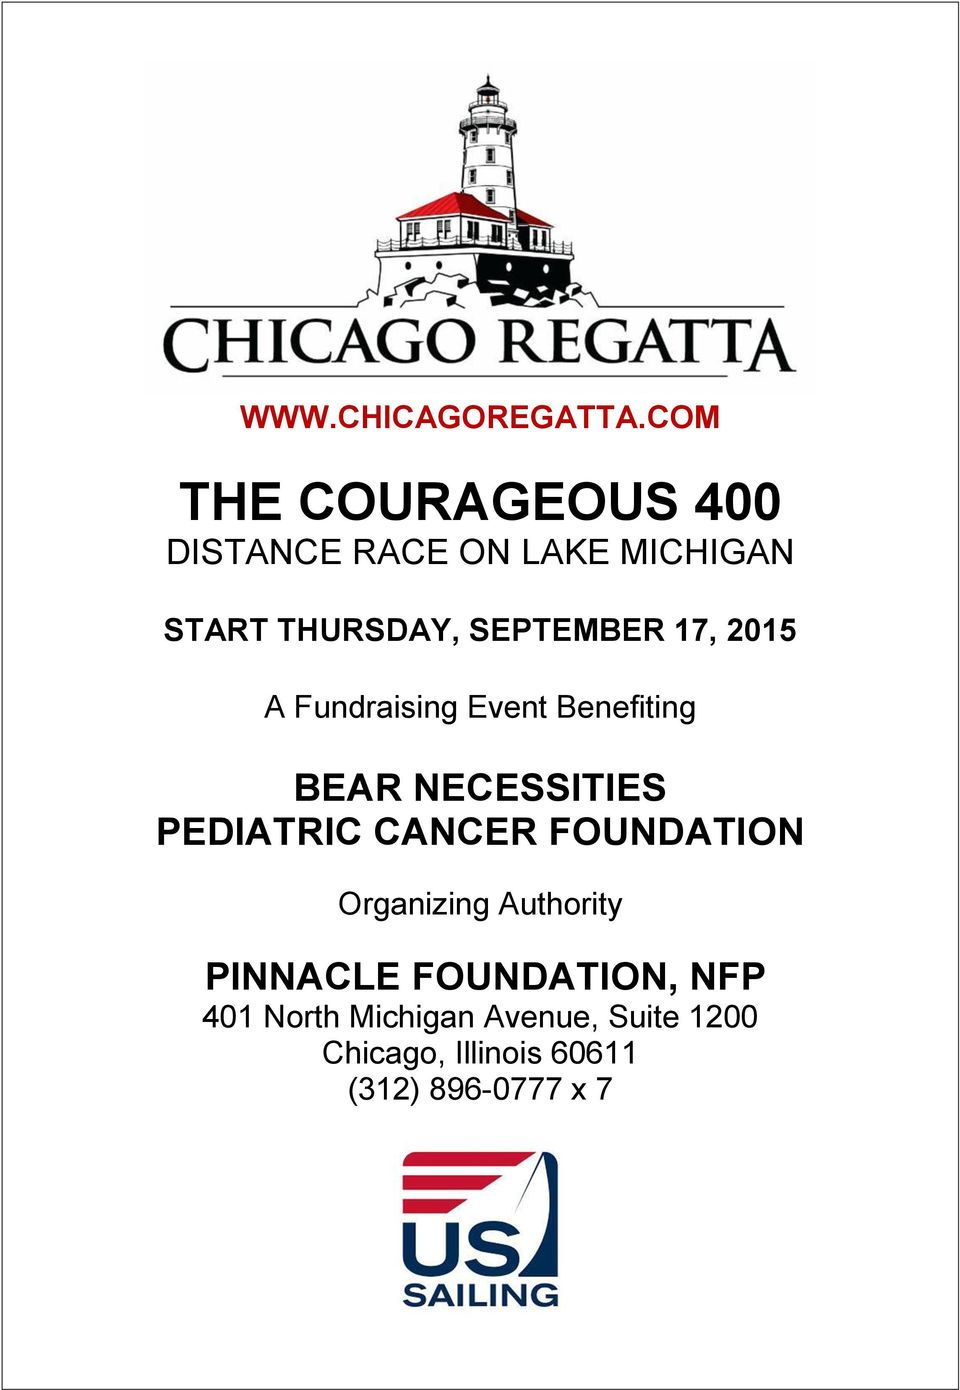 SEPTEMBER 17, 2015 A Fundraising Event Benefiting BEAR NECESSITIES PEDIATRIC